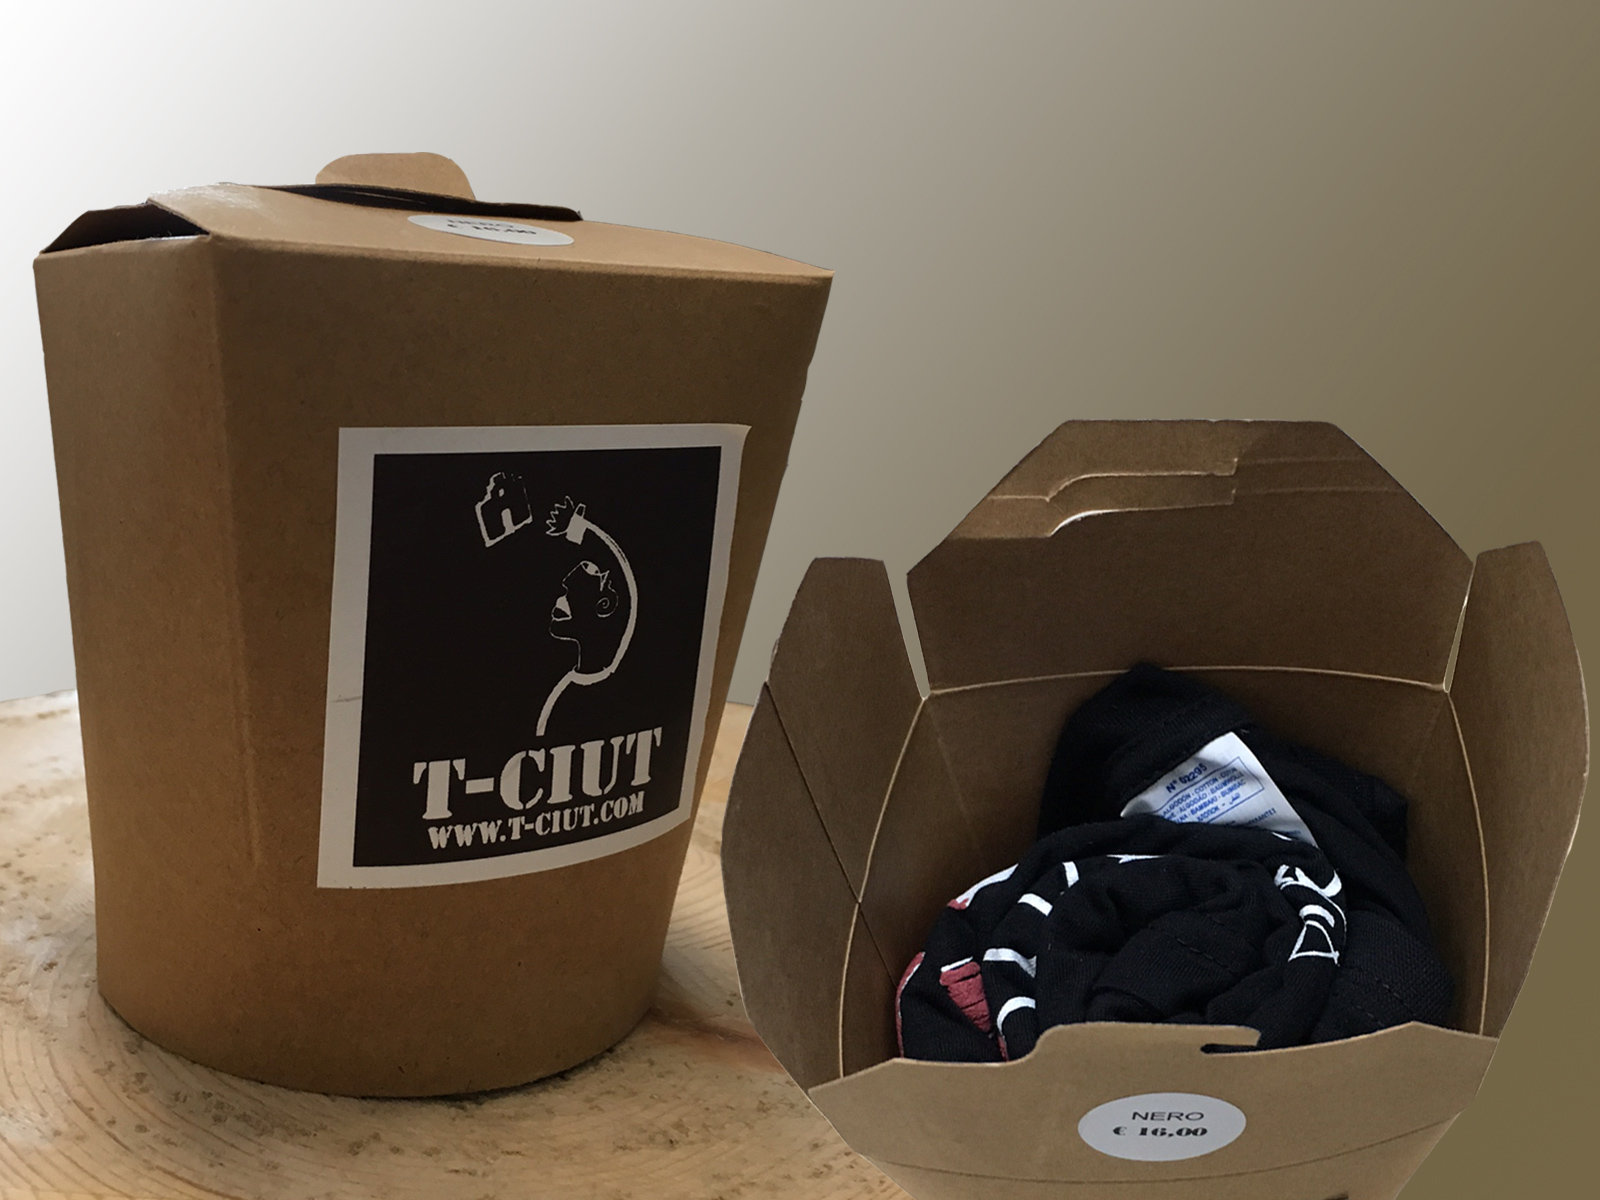 Packaging t-shirt T-ciut